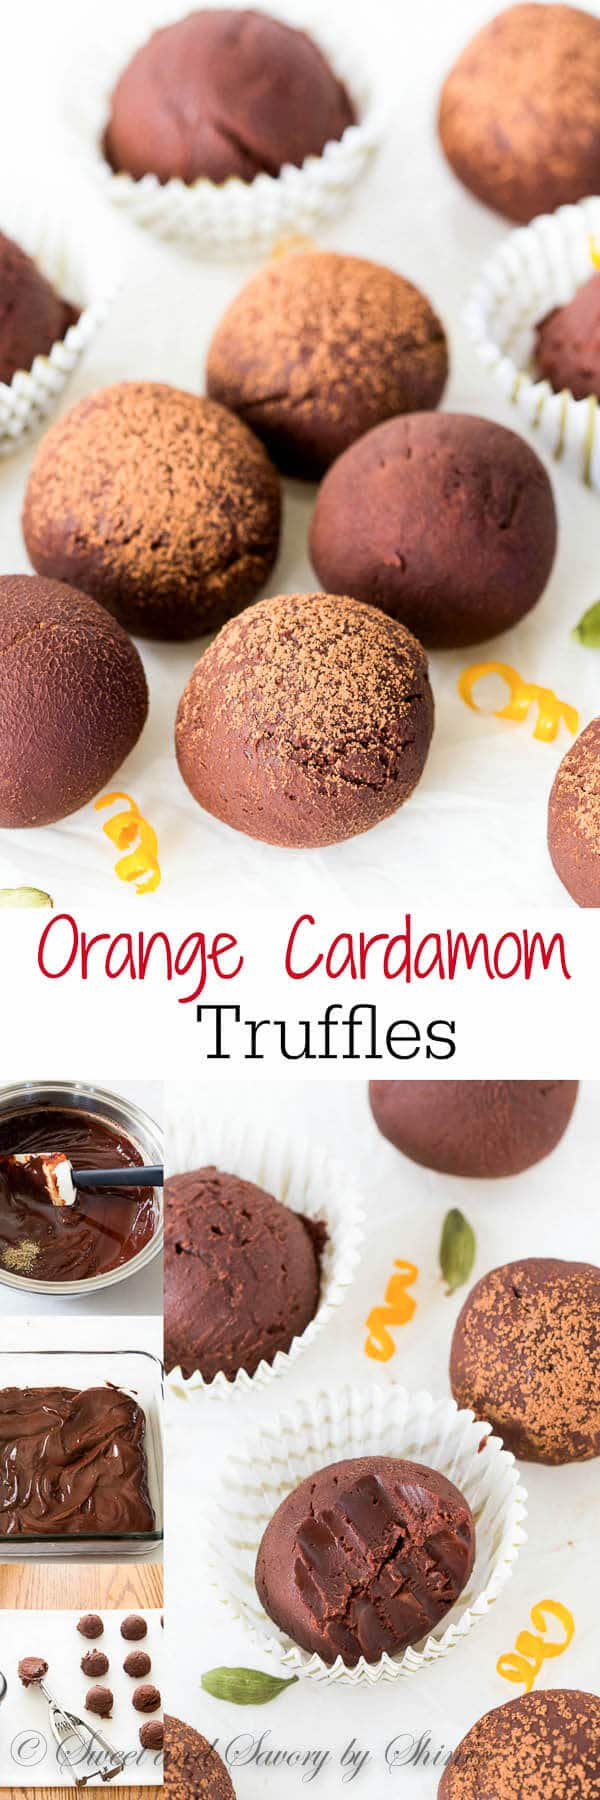 , yet delicate flavors, these dark chocolate orange cardamom truffles ...